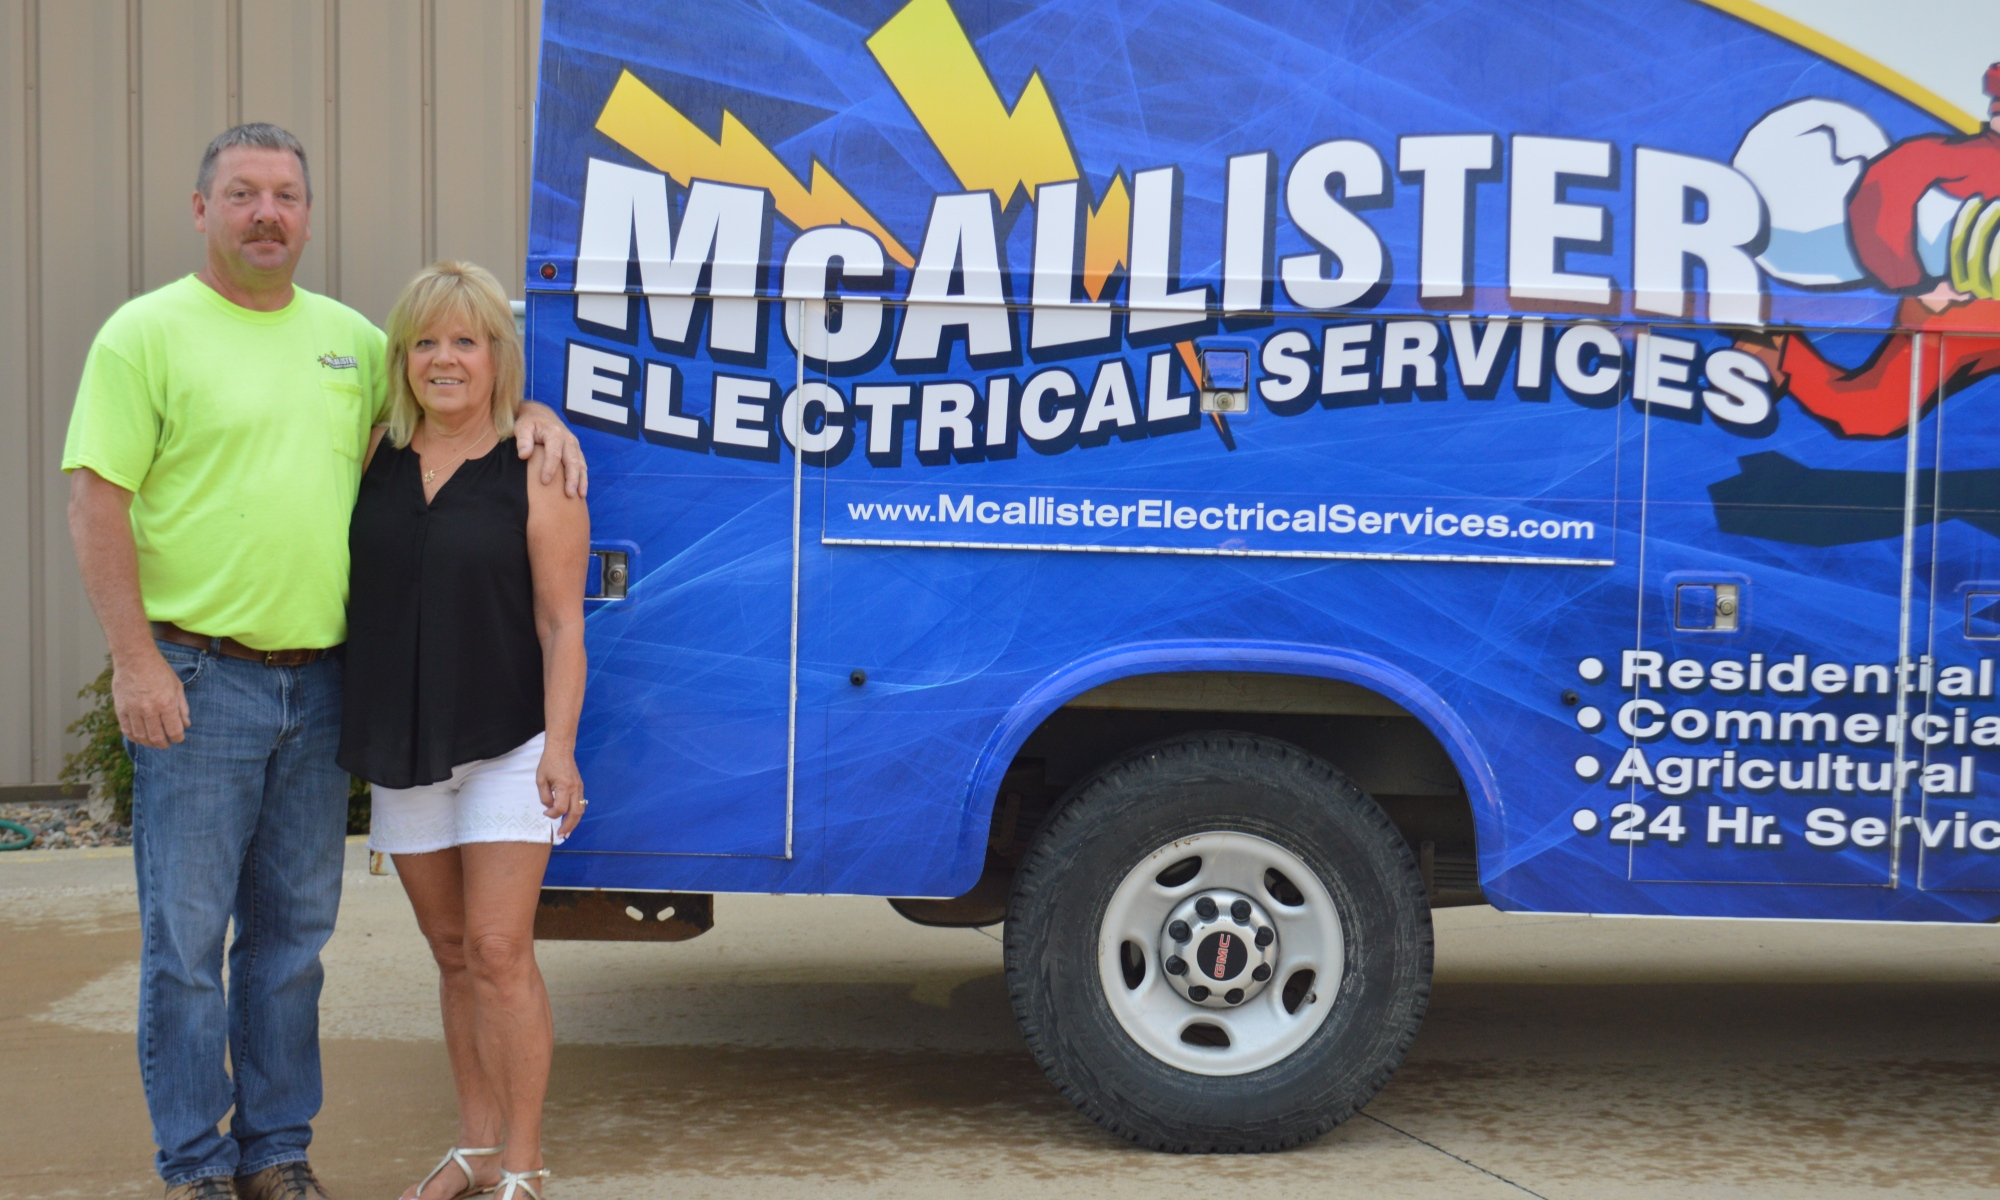 Owners Pete and Chris McAllister appear in front of a company service van